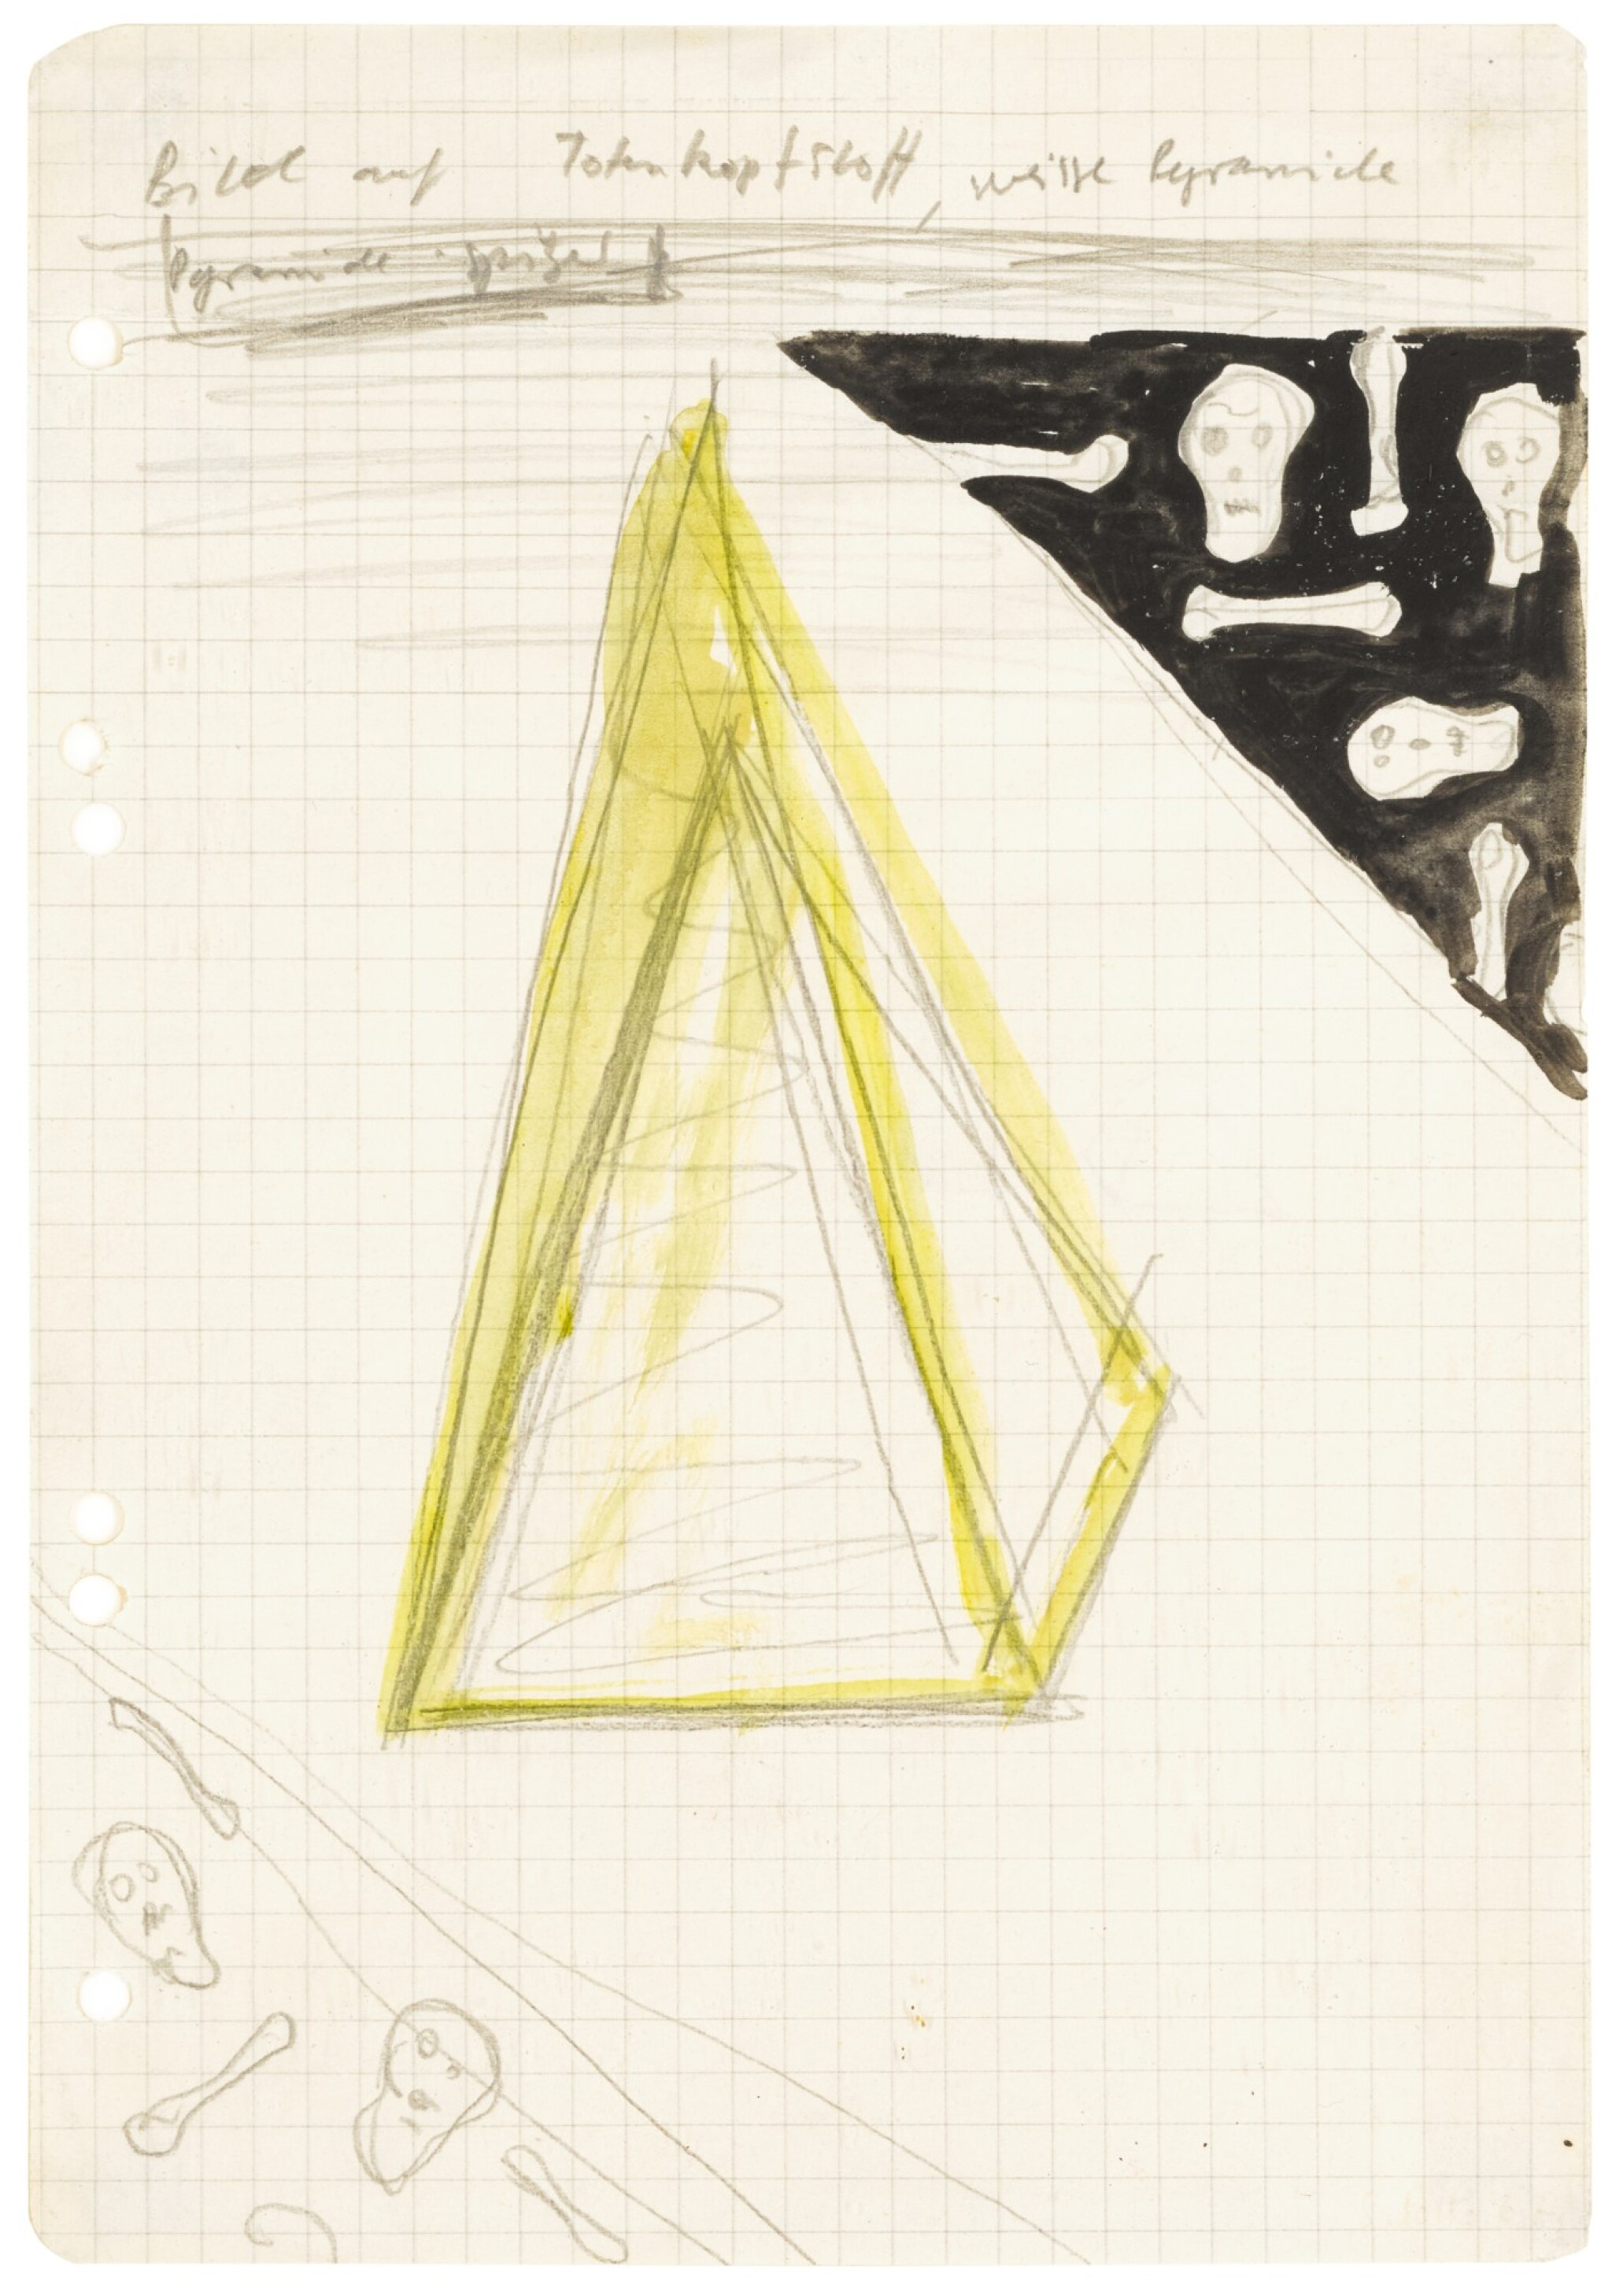 View full screen - View 1 of Lot 830. SIGMAR POLKE | BILD AUF TOTENKOPFSTOFF, WEISSE PYRAMIDE.